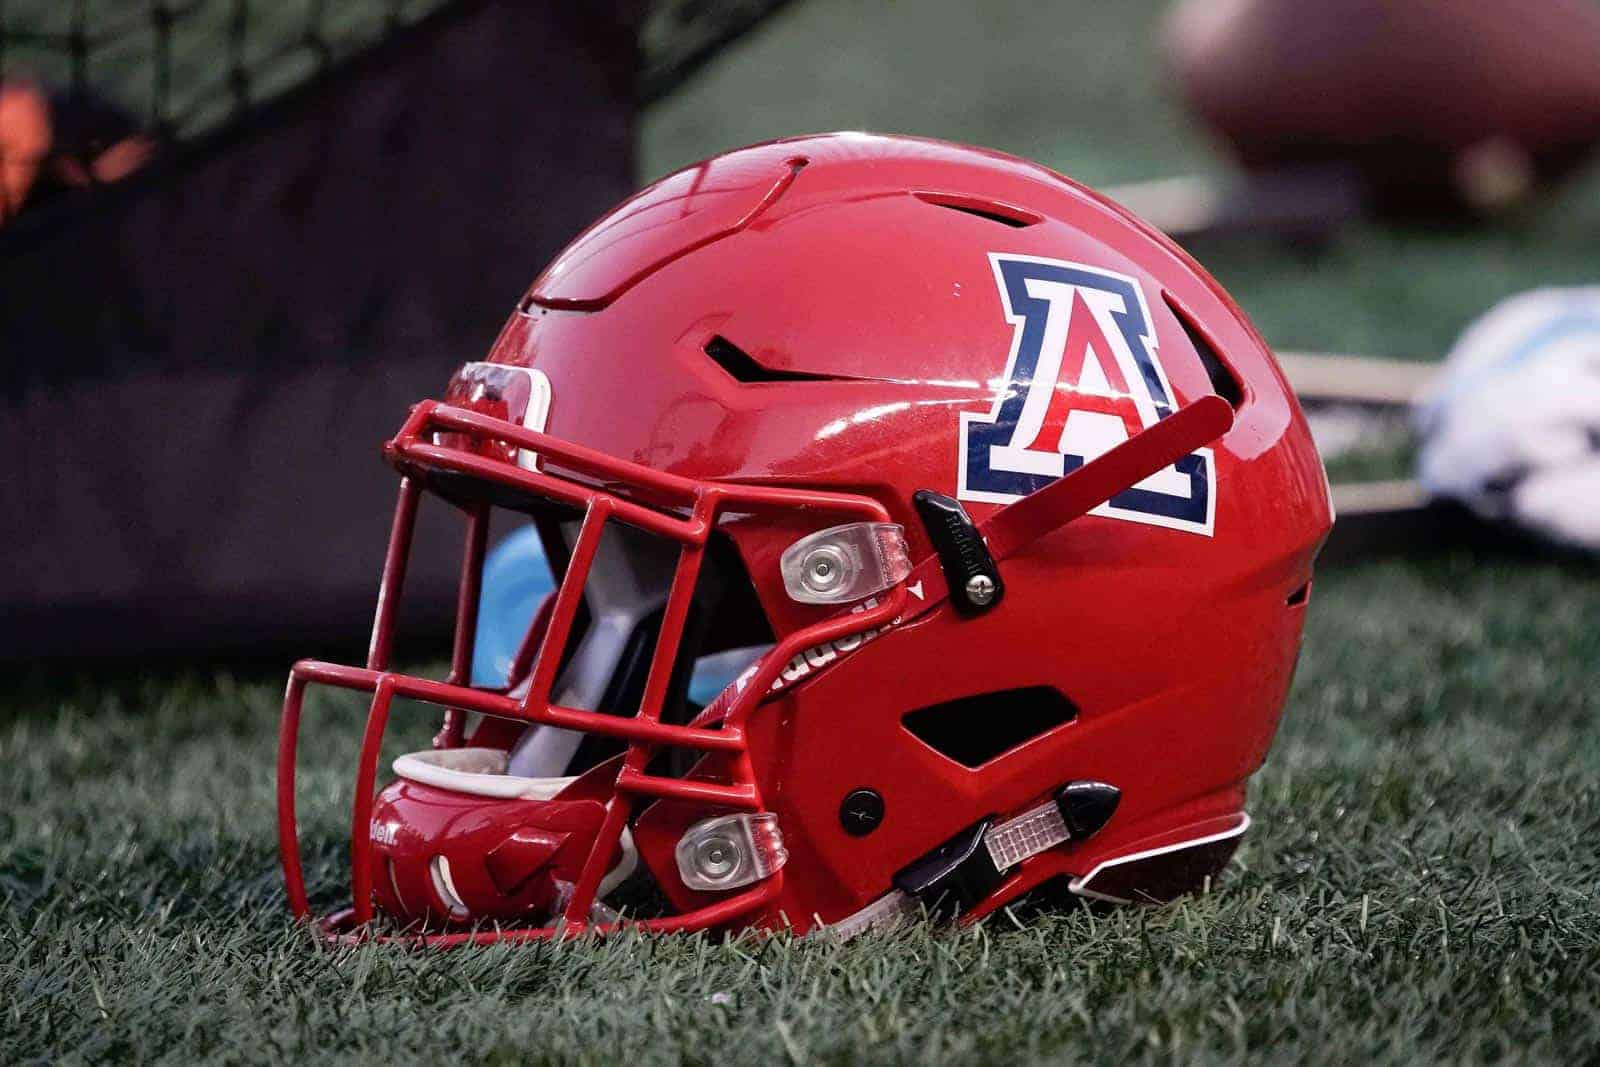 College Football Schedule: Arizona